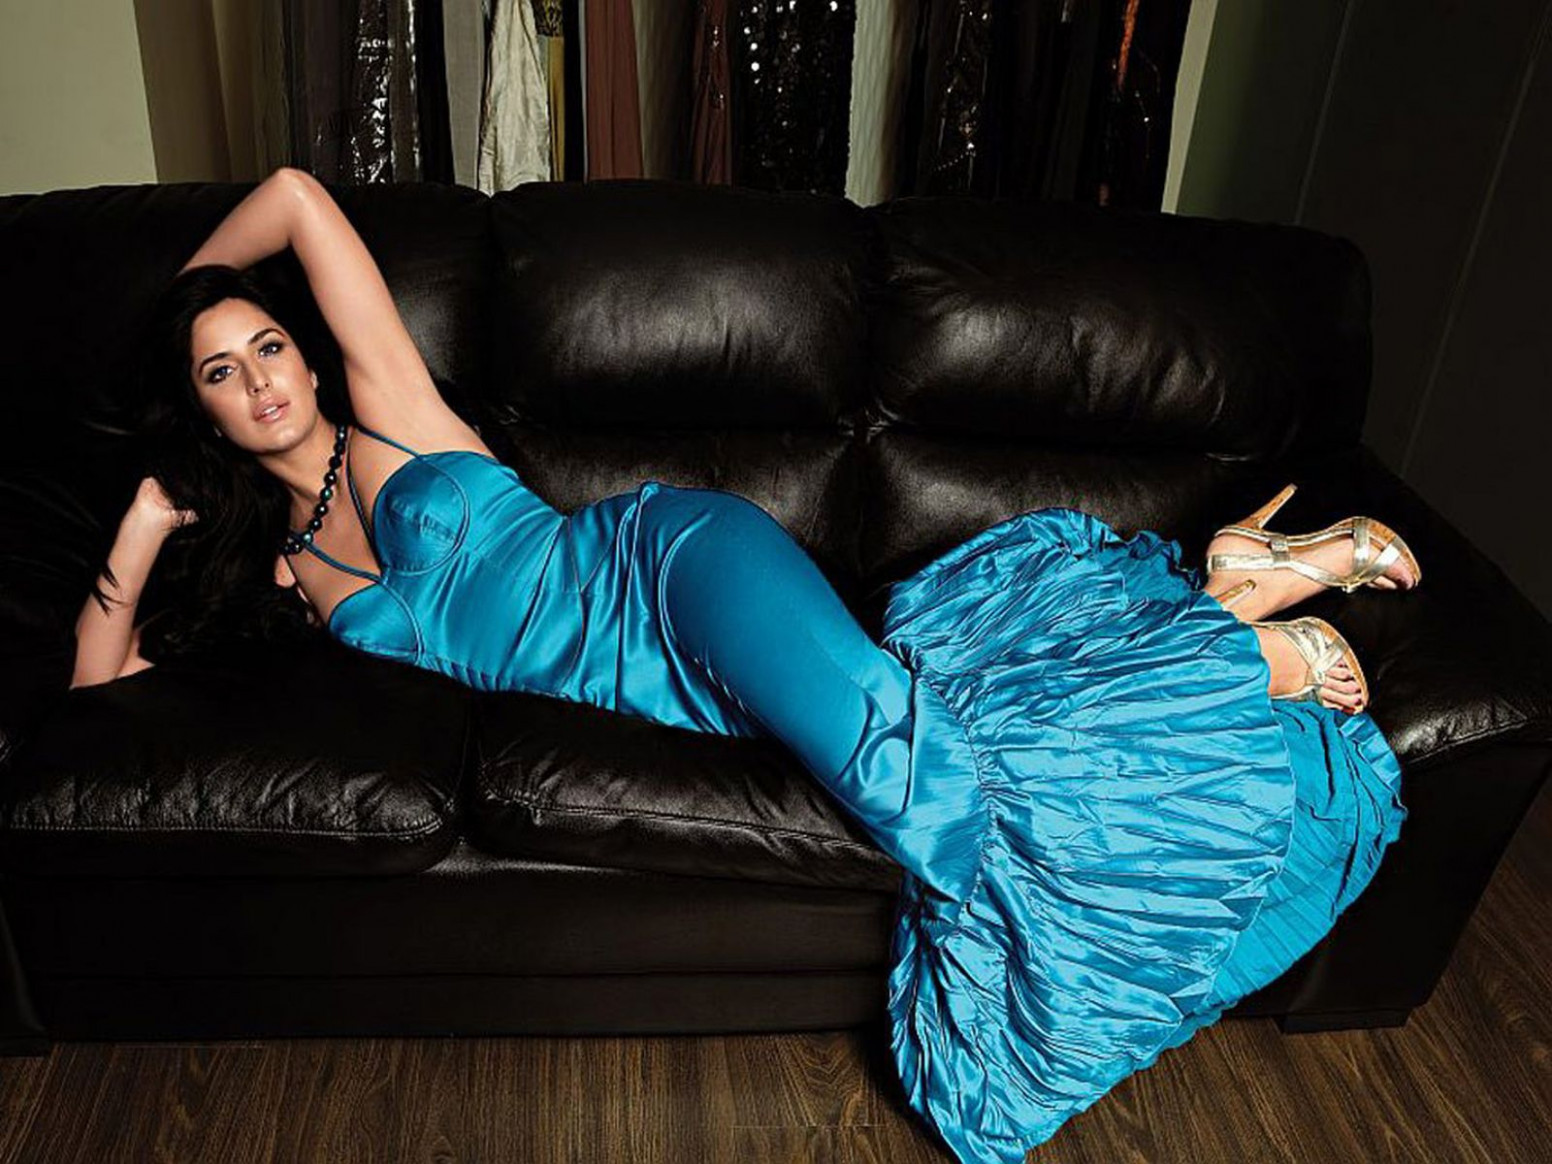 katrina kaif in blue dress wallpapers for pc | Rocking ...